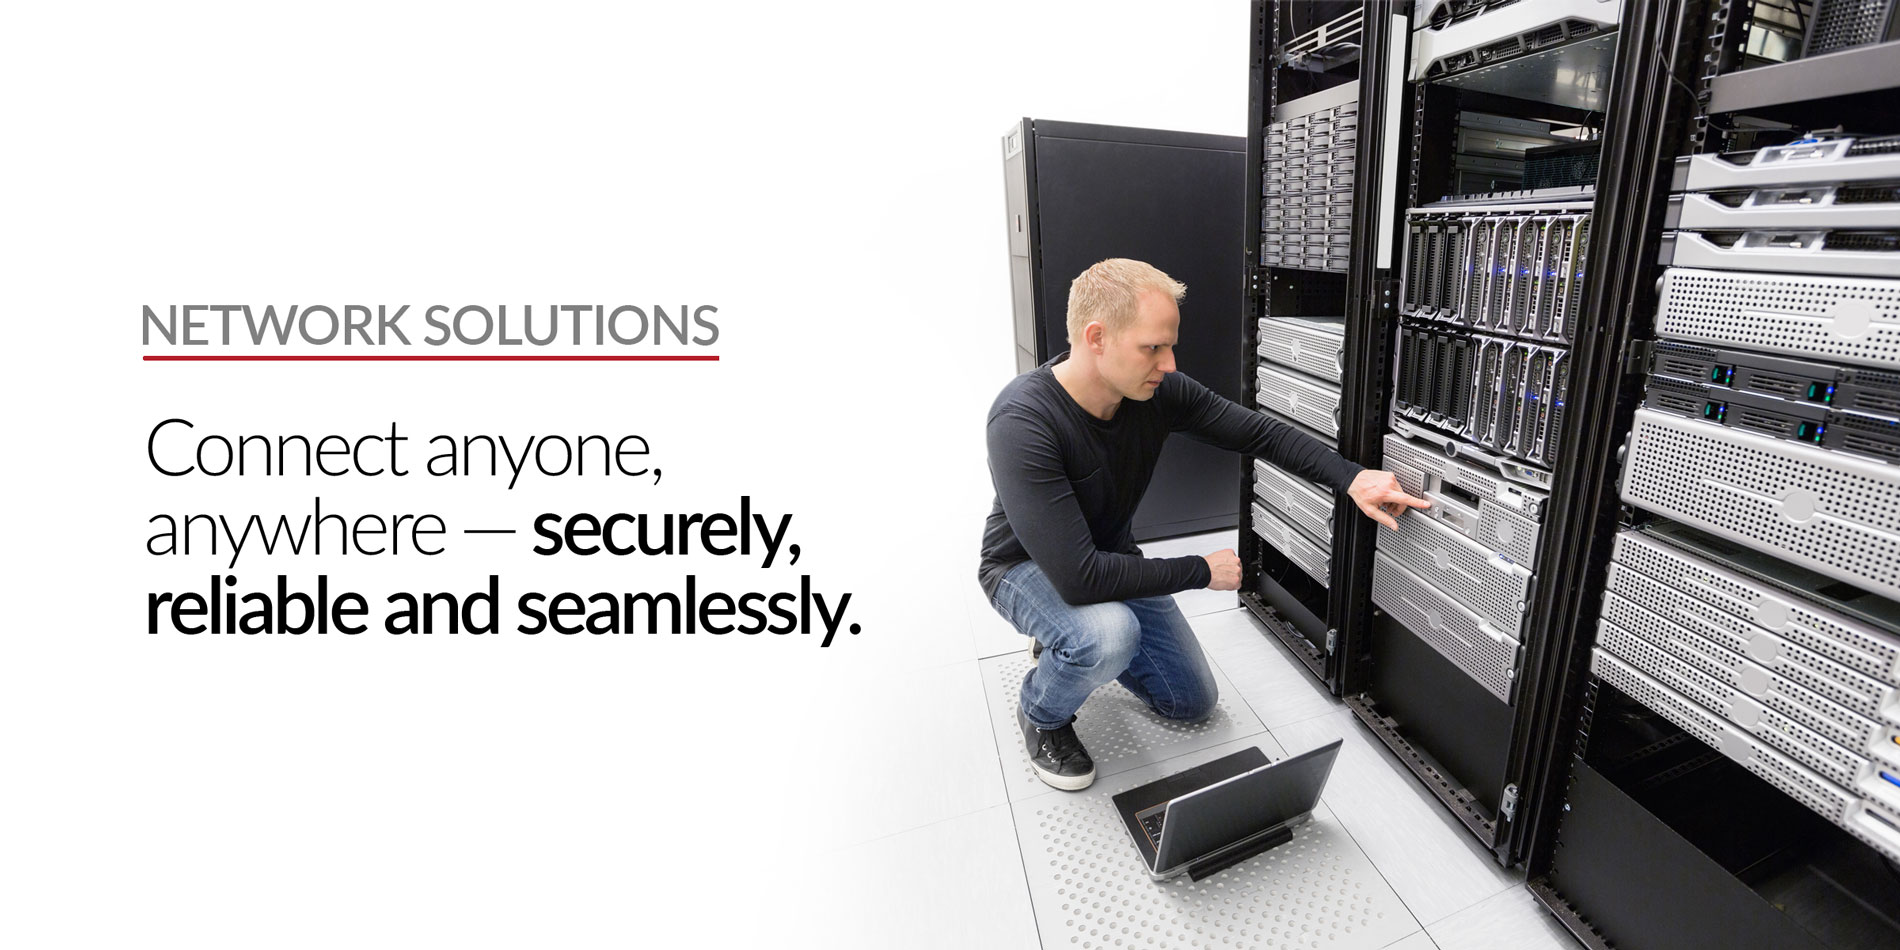 Stratix Systems Network Solutions Services